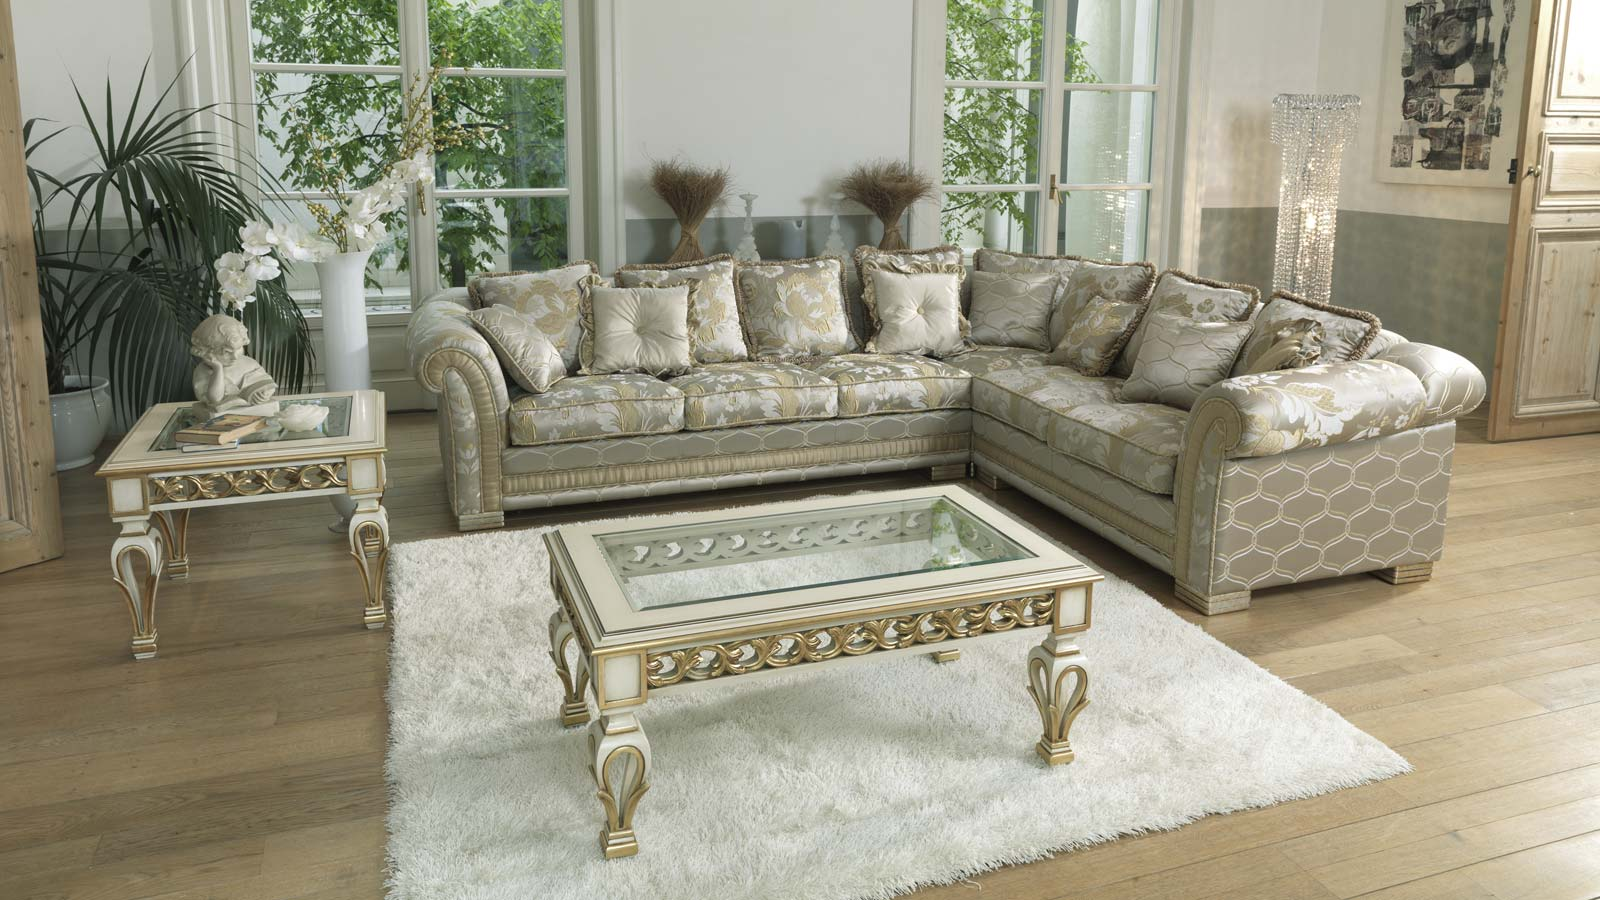 classic style sofa modern sectional clearance ambassador corner luxury in a